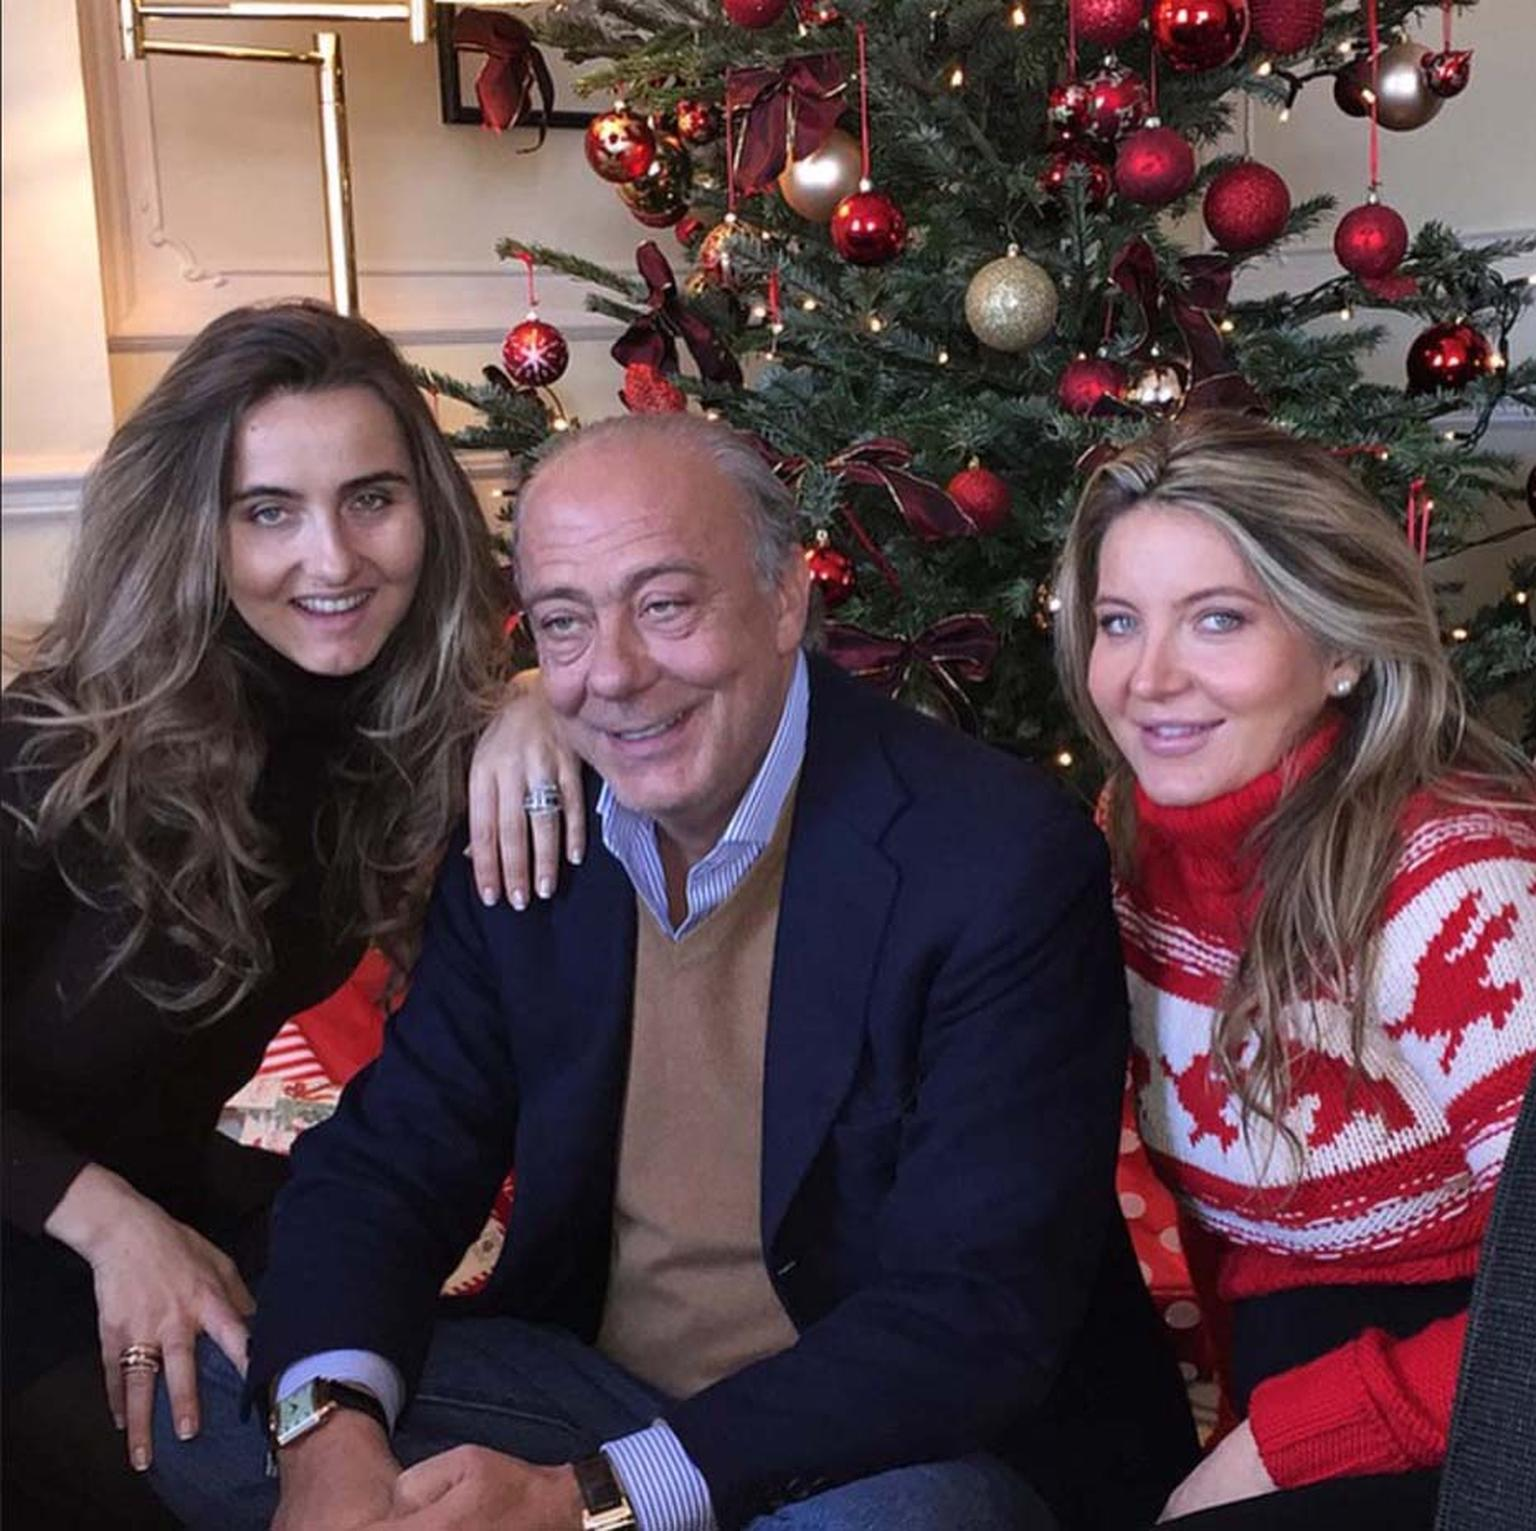 De GRISOGONO's Instagram account doesn't take itself too seriously and mixes stylish pictures of jewellery with candid shots, like this one of founder Fawaz Gruosi and his family at Christmas. Image: @degrisogono_official Instagram